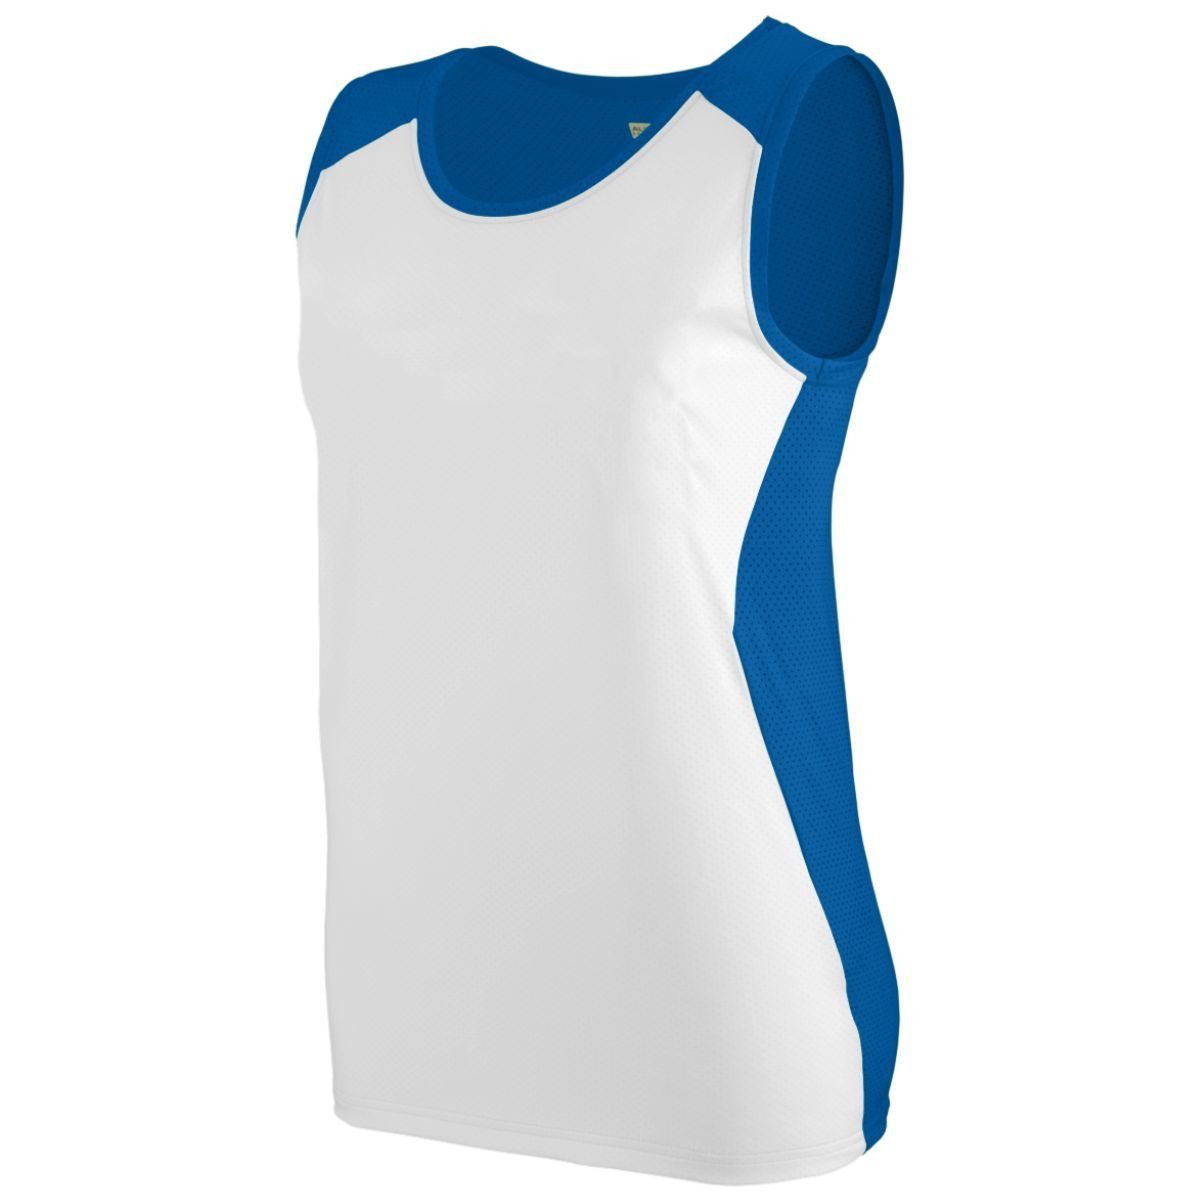 Ladies Alize Jersey - ROYAL/WHITE